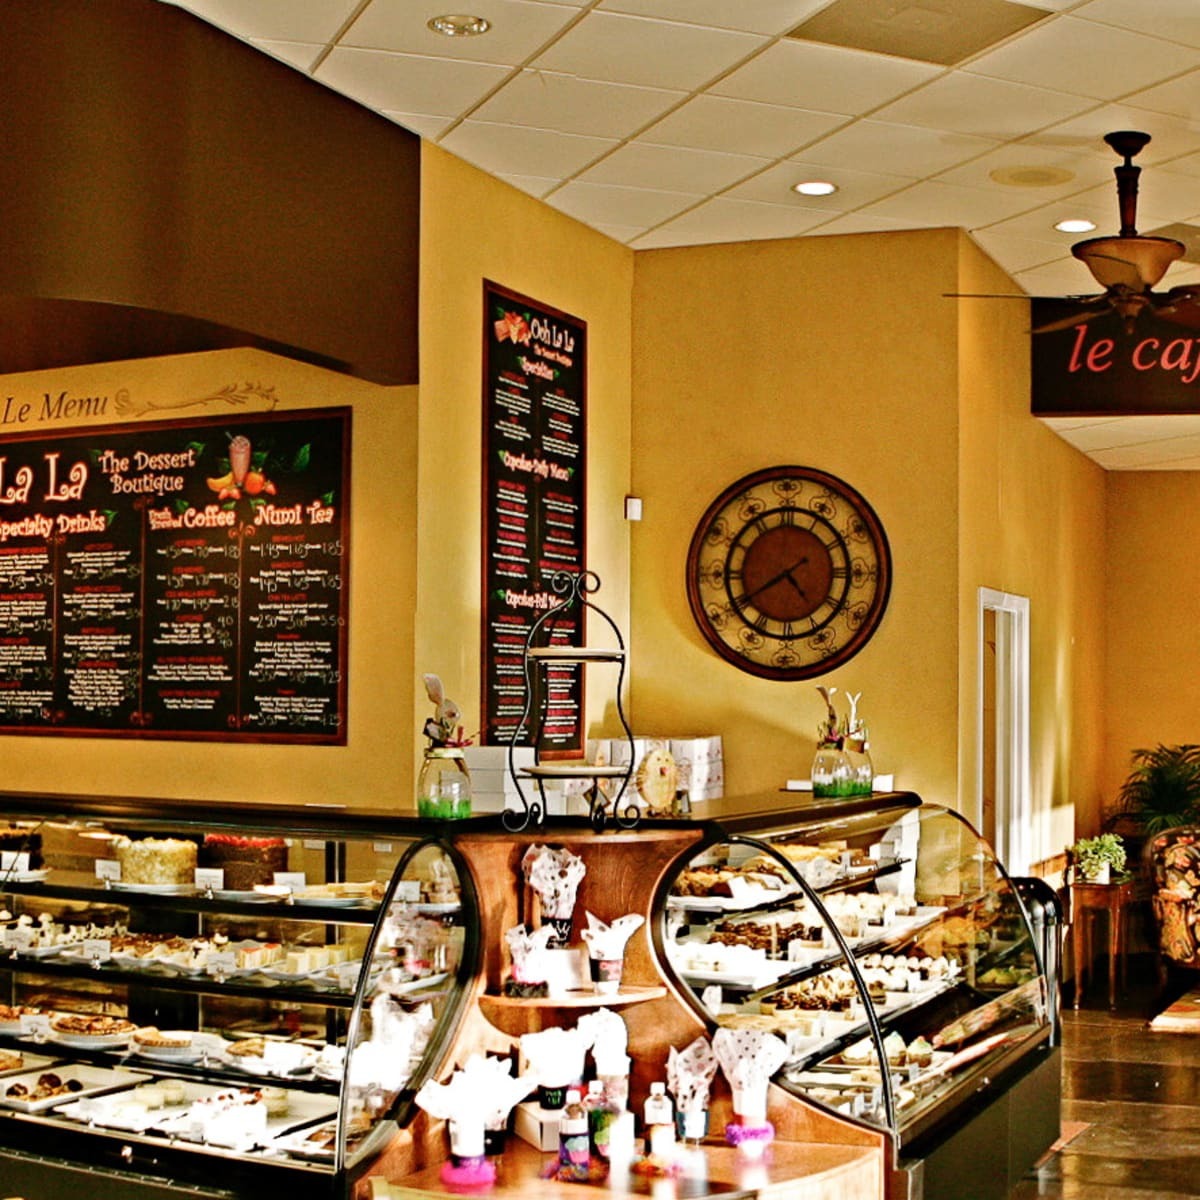 Places_Food_Ooh La La_interior